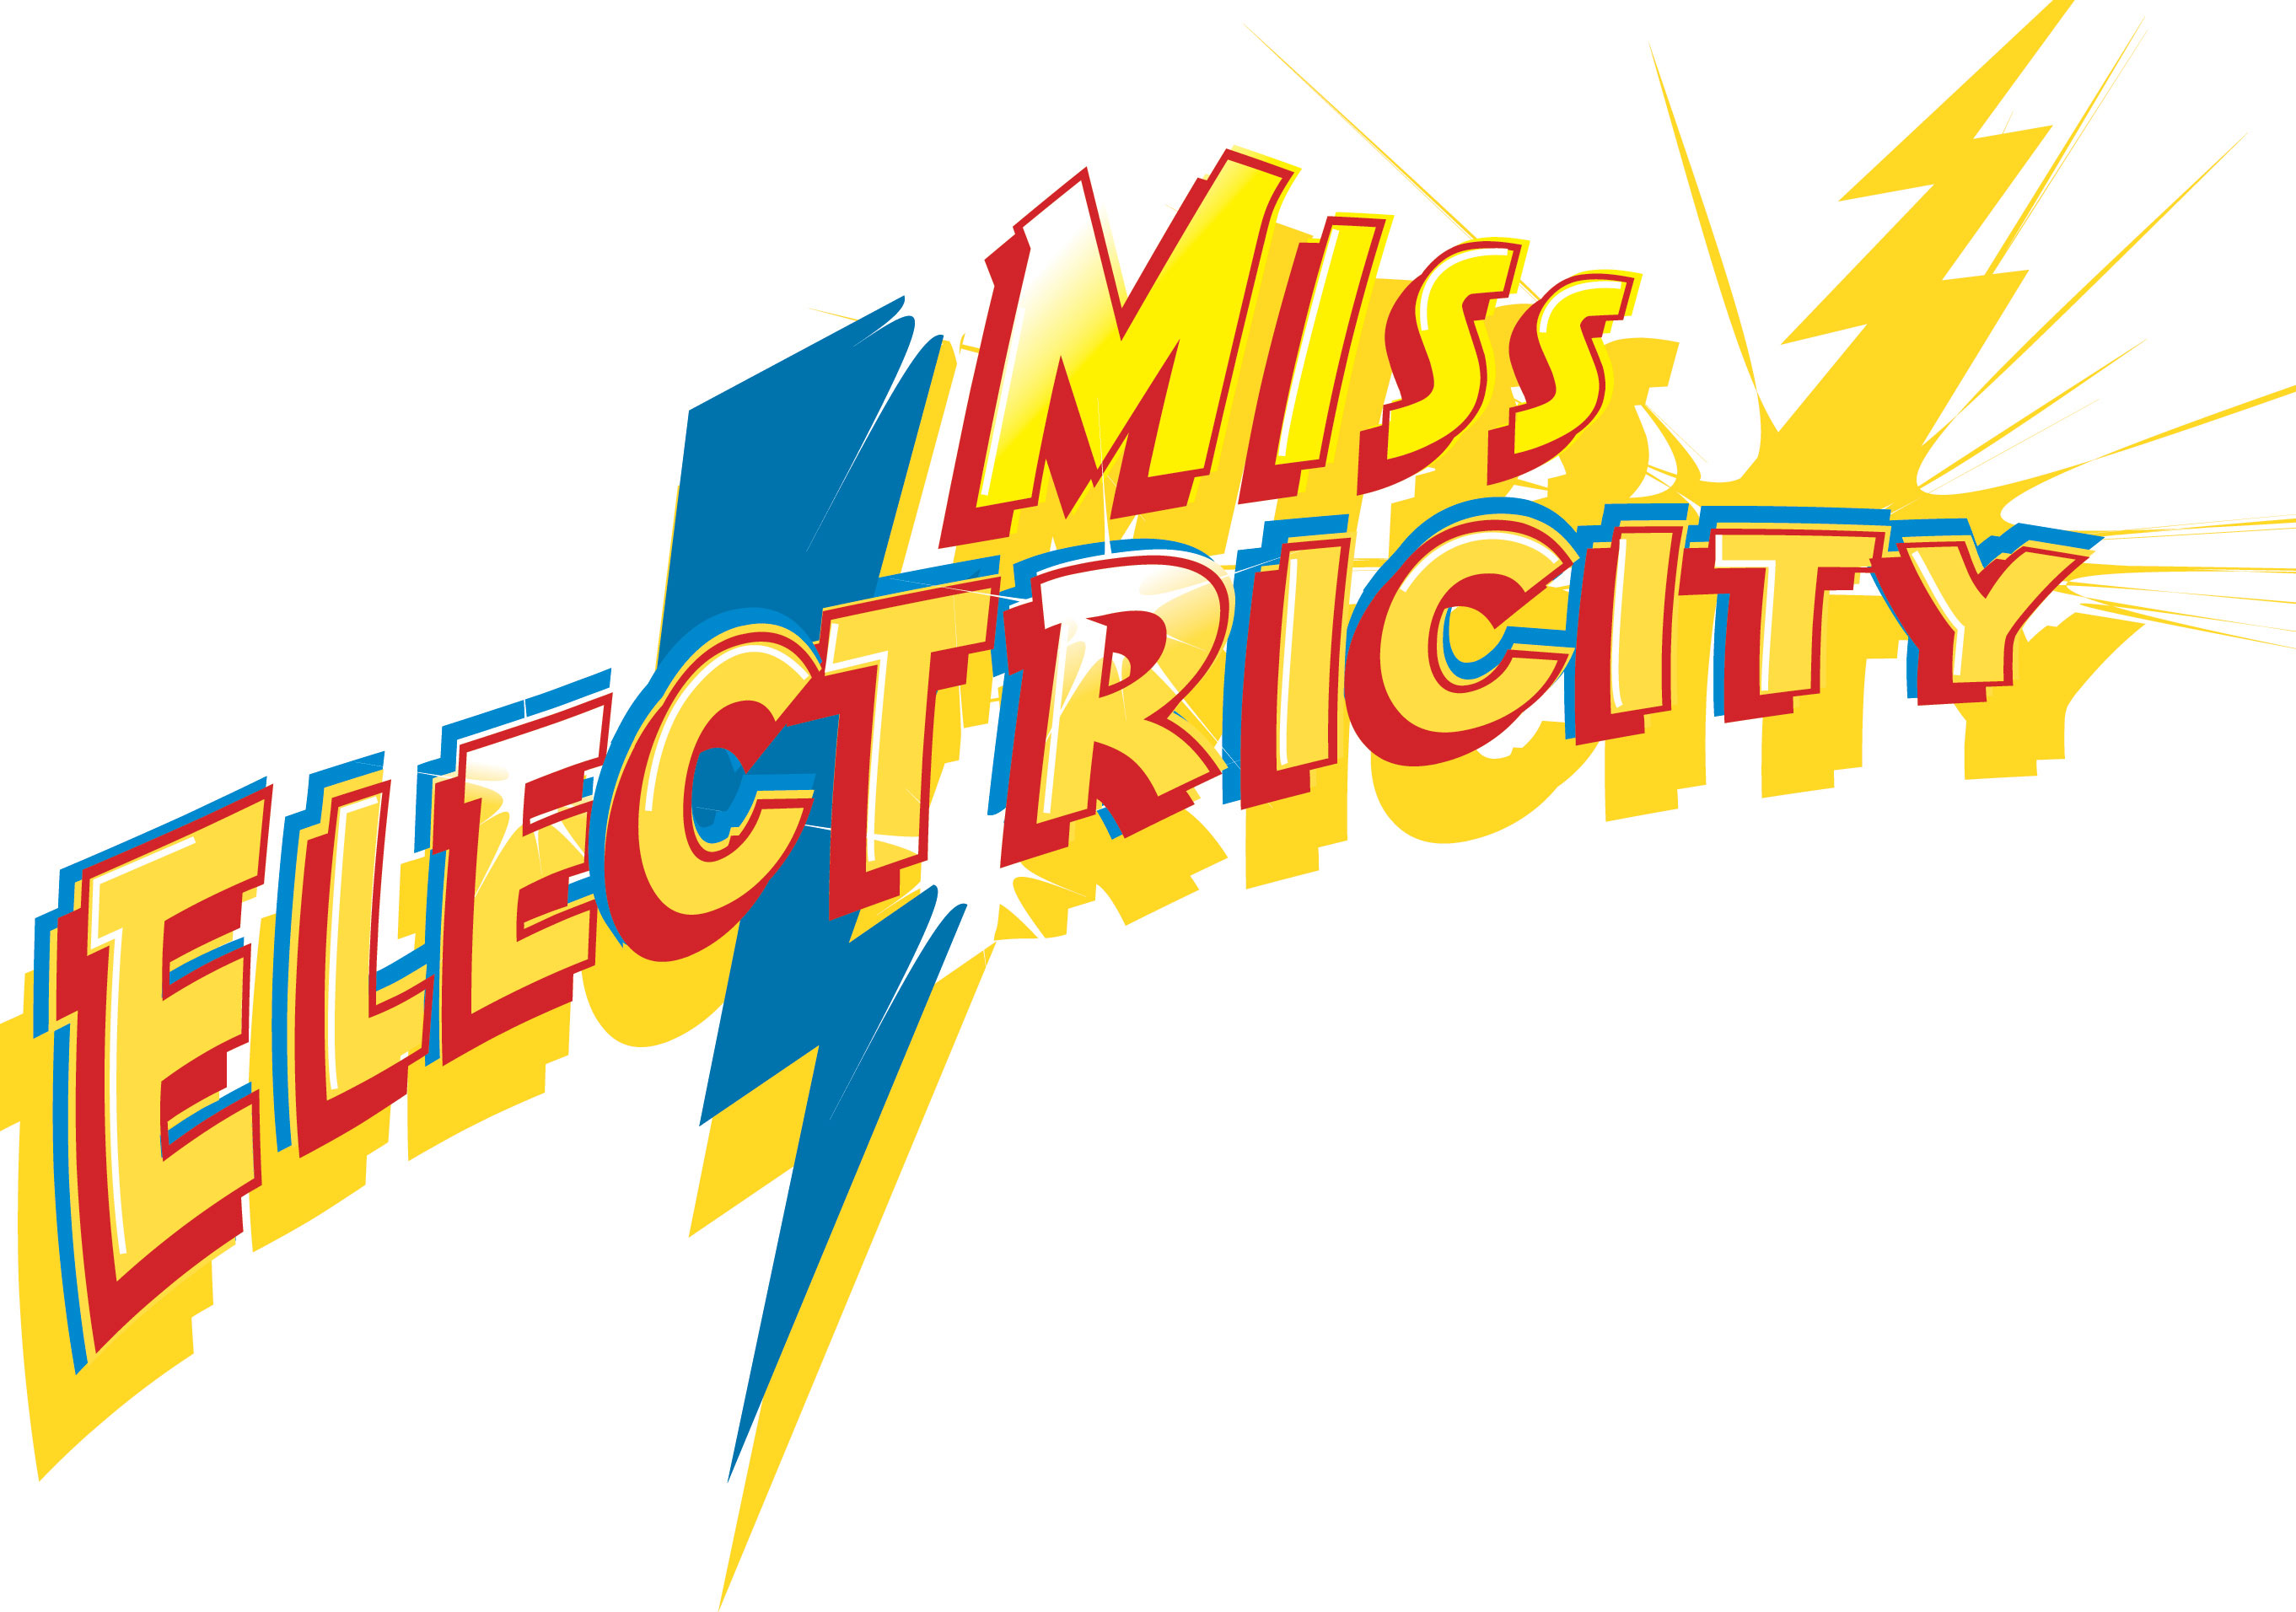 La Jolla Playhouse Announces POP TOUR 2009 MISS ELECTRICITY